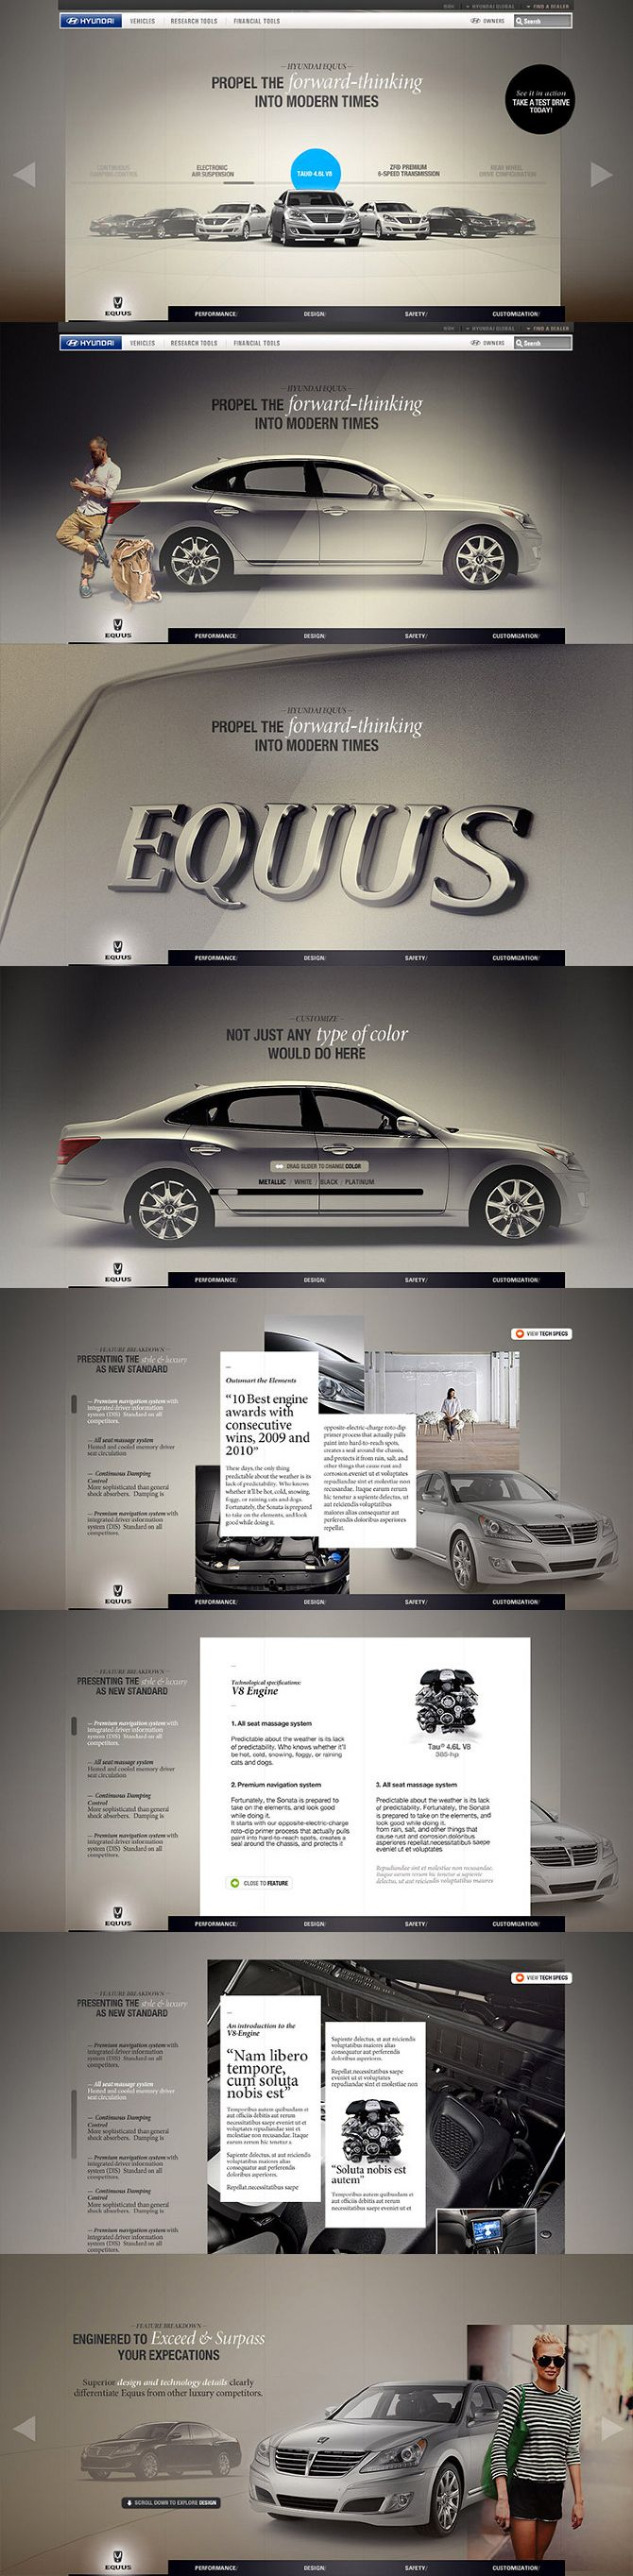 Cool Automotive Web Design on the Internet. Hyundai. #automotive #webdesign @ http://www.pinterest.com/alfredchong/automotive-web-design/